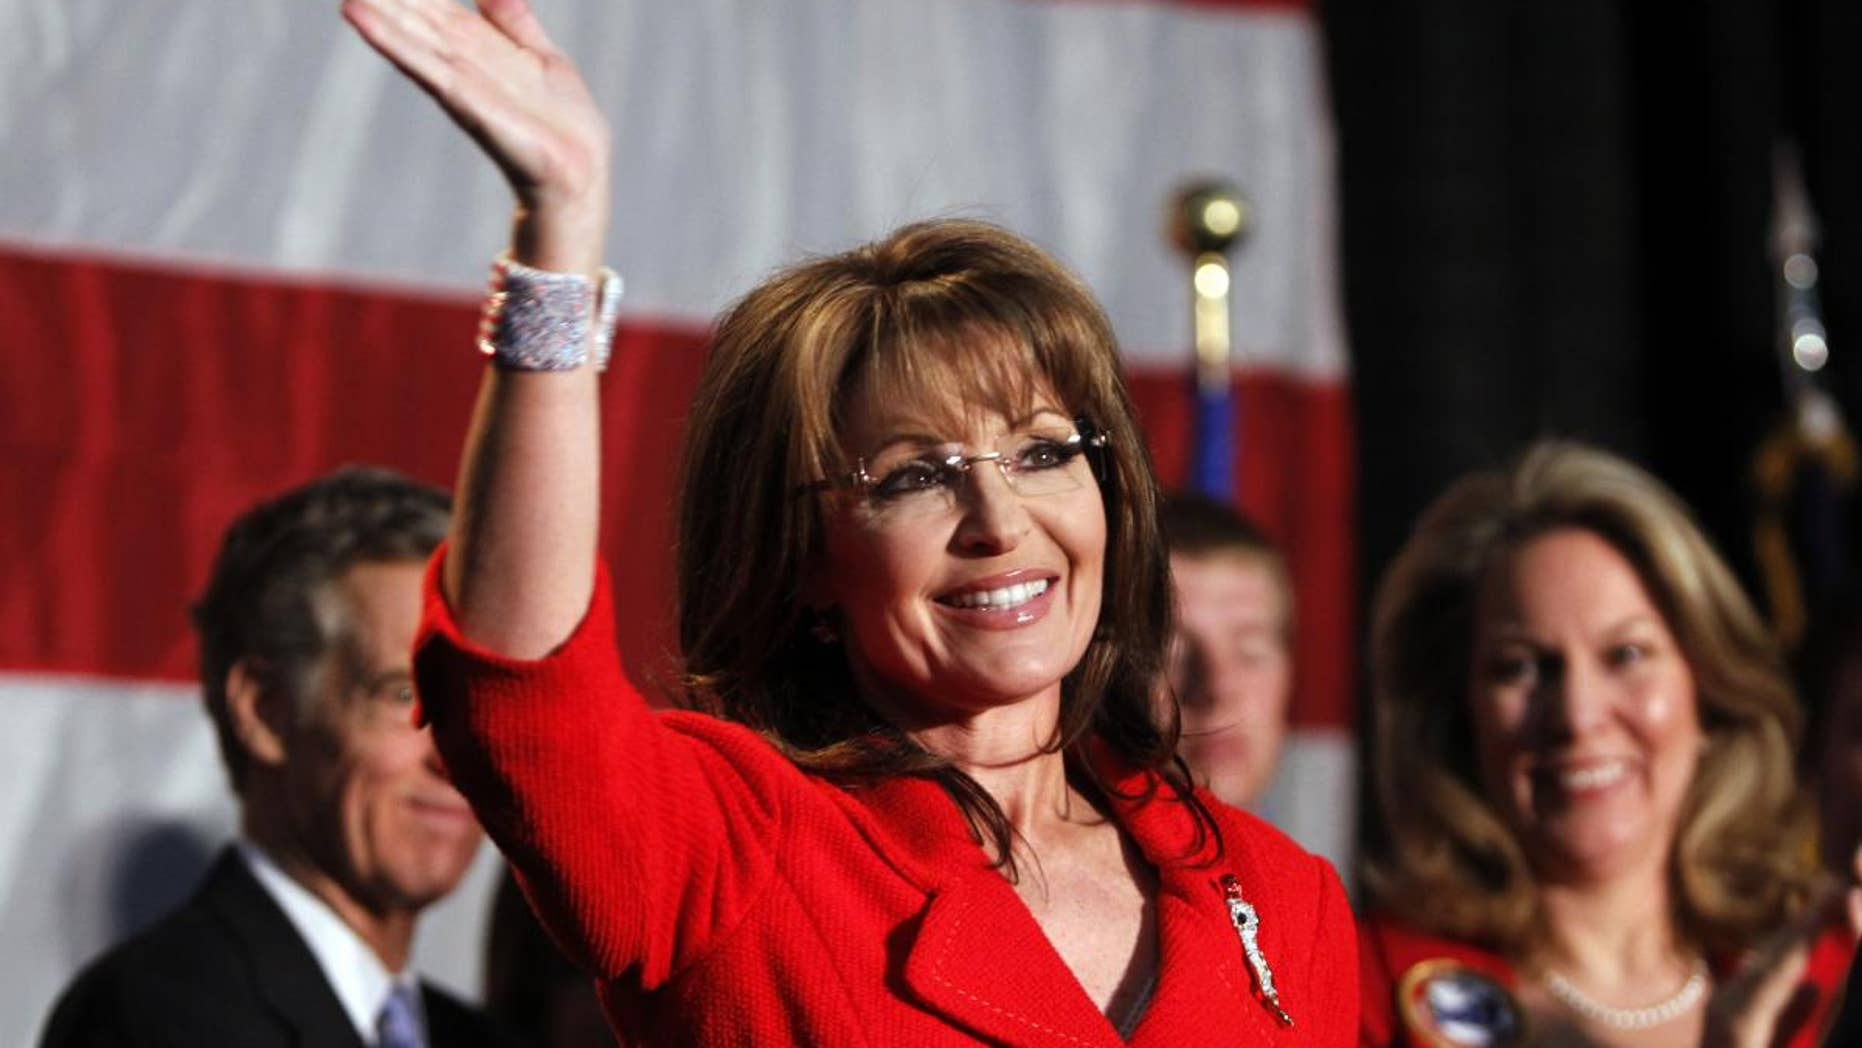 In this May 2, 2011, file photo, former Alaska Governor Sarah Palin waves during a fundraiser at Colorado Christian University in Lakewood, Colo. (AP Photo/Ed Andrieski)